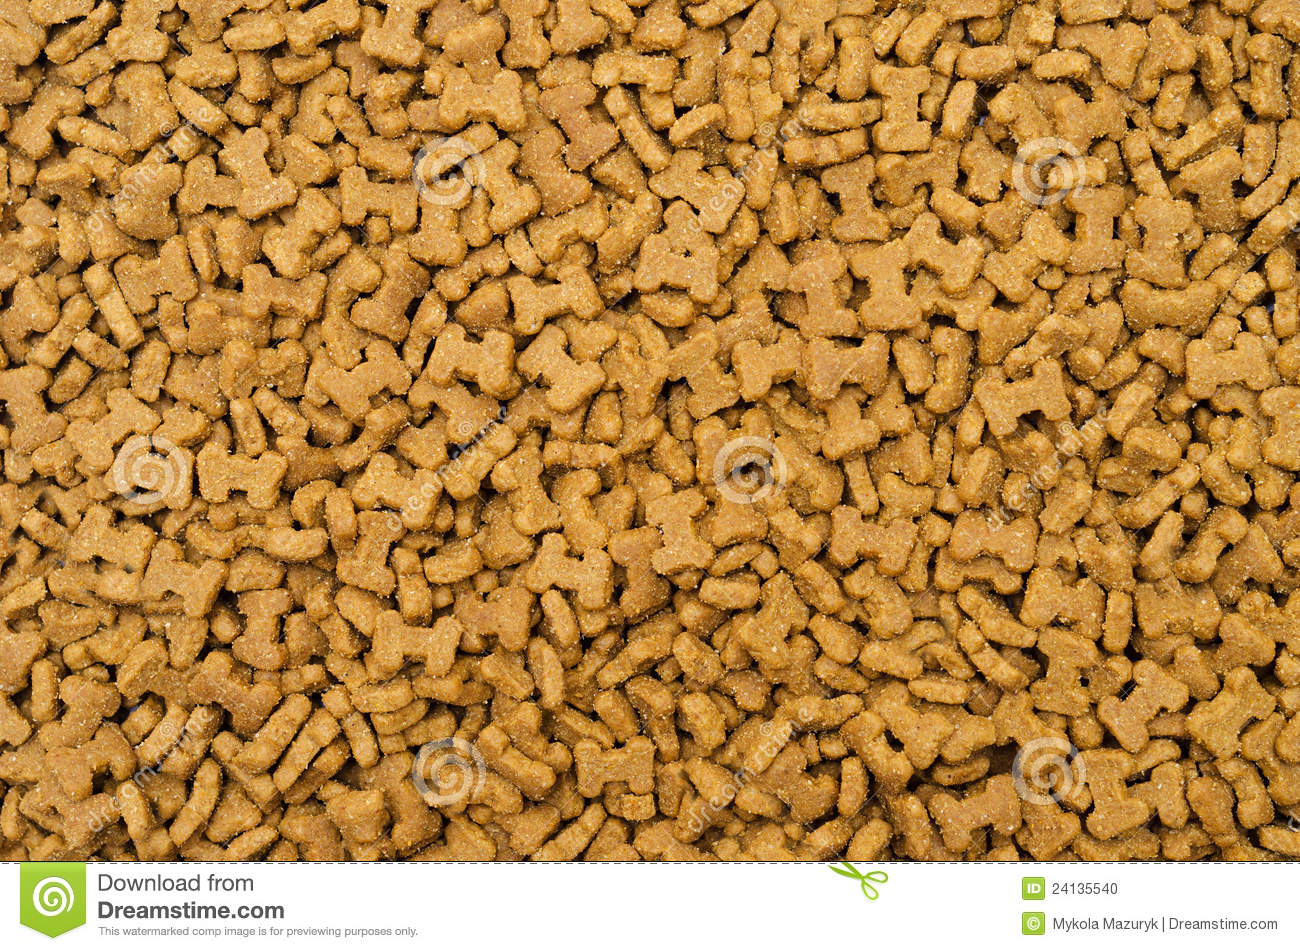 Dry Cat Food As Textured Background